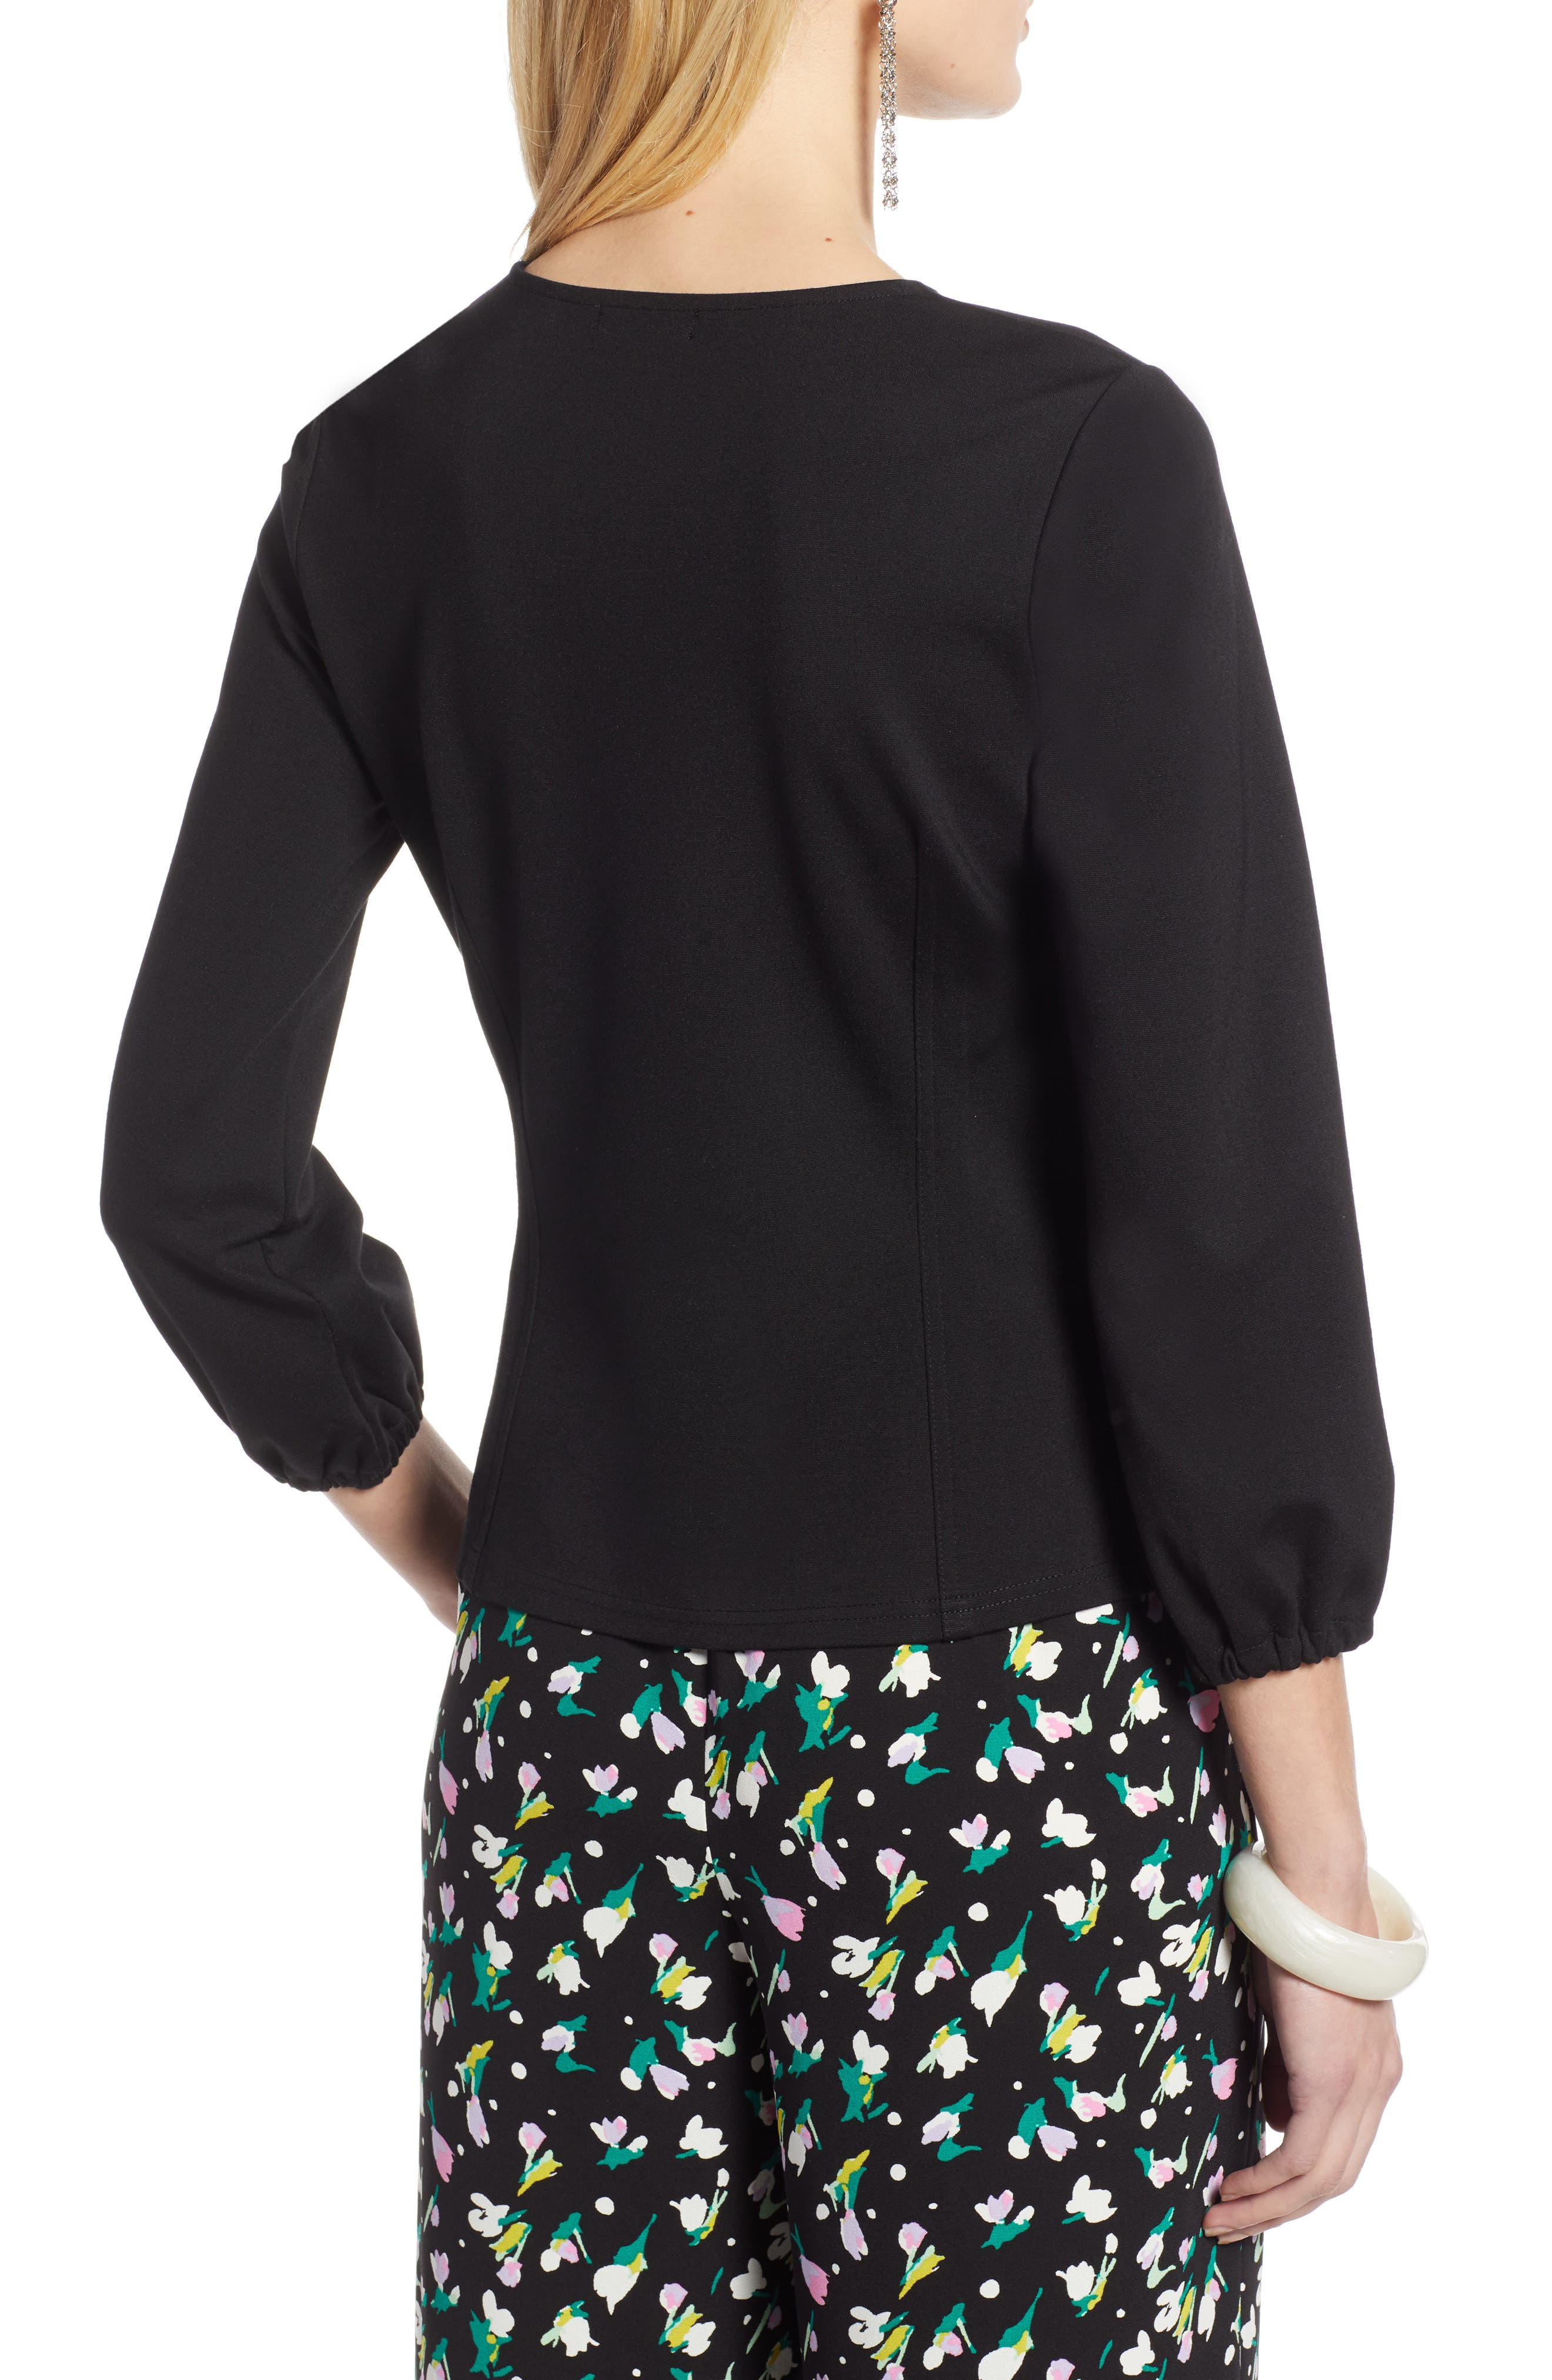 HALOGEN<SUP>®</SUP>, Structured Stretch Knit Top, Alternate thumbnail 2, color, BLACK